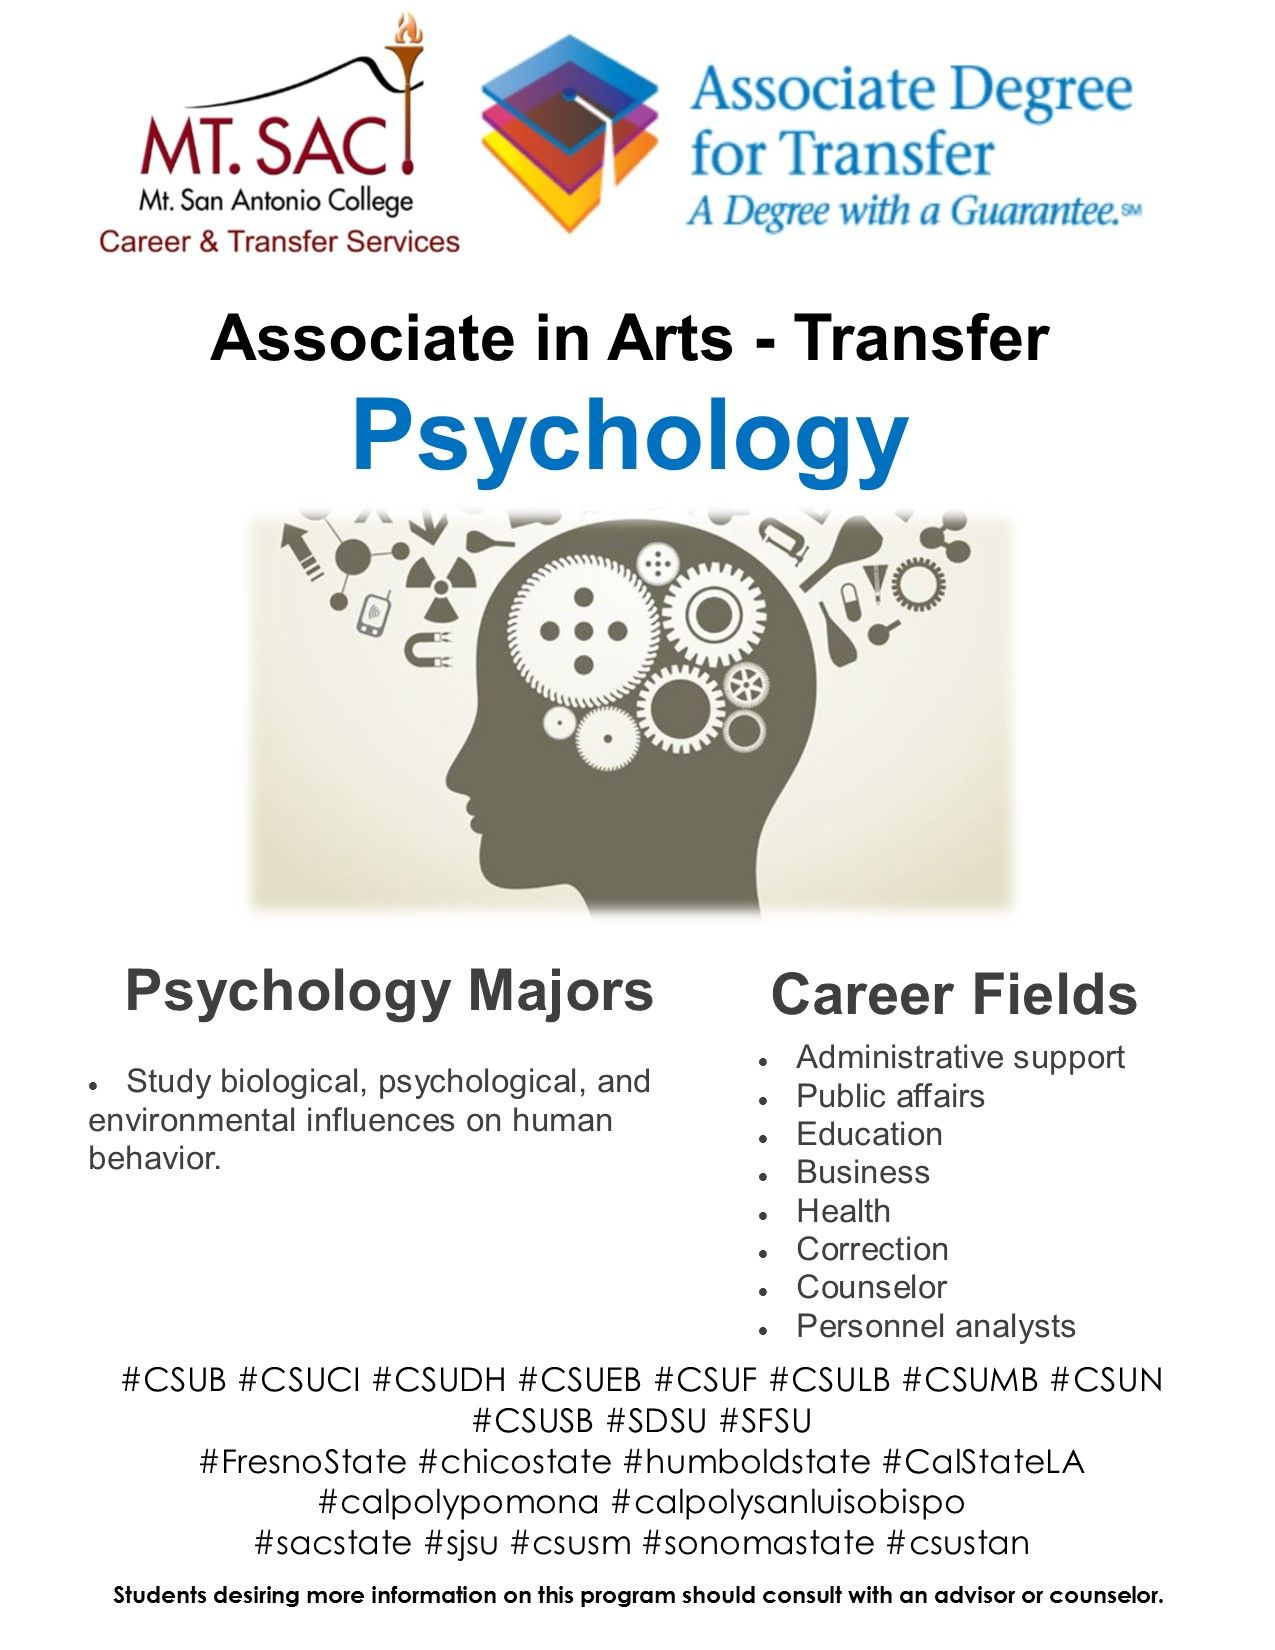 Associate in Arts for Transfer (AAT) in Psychology is